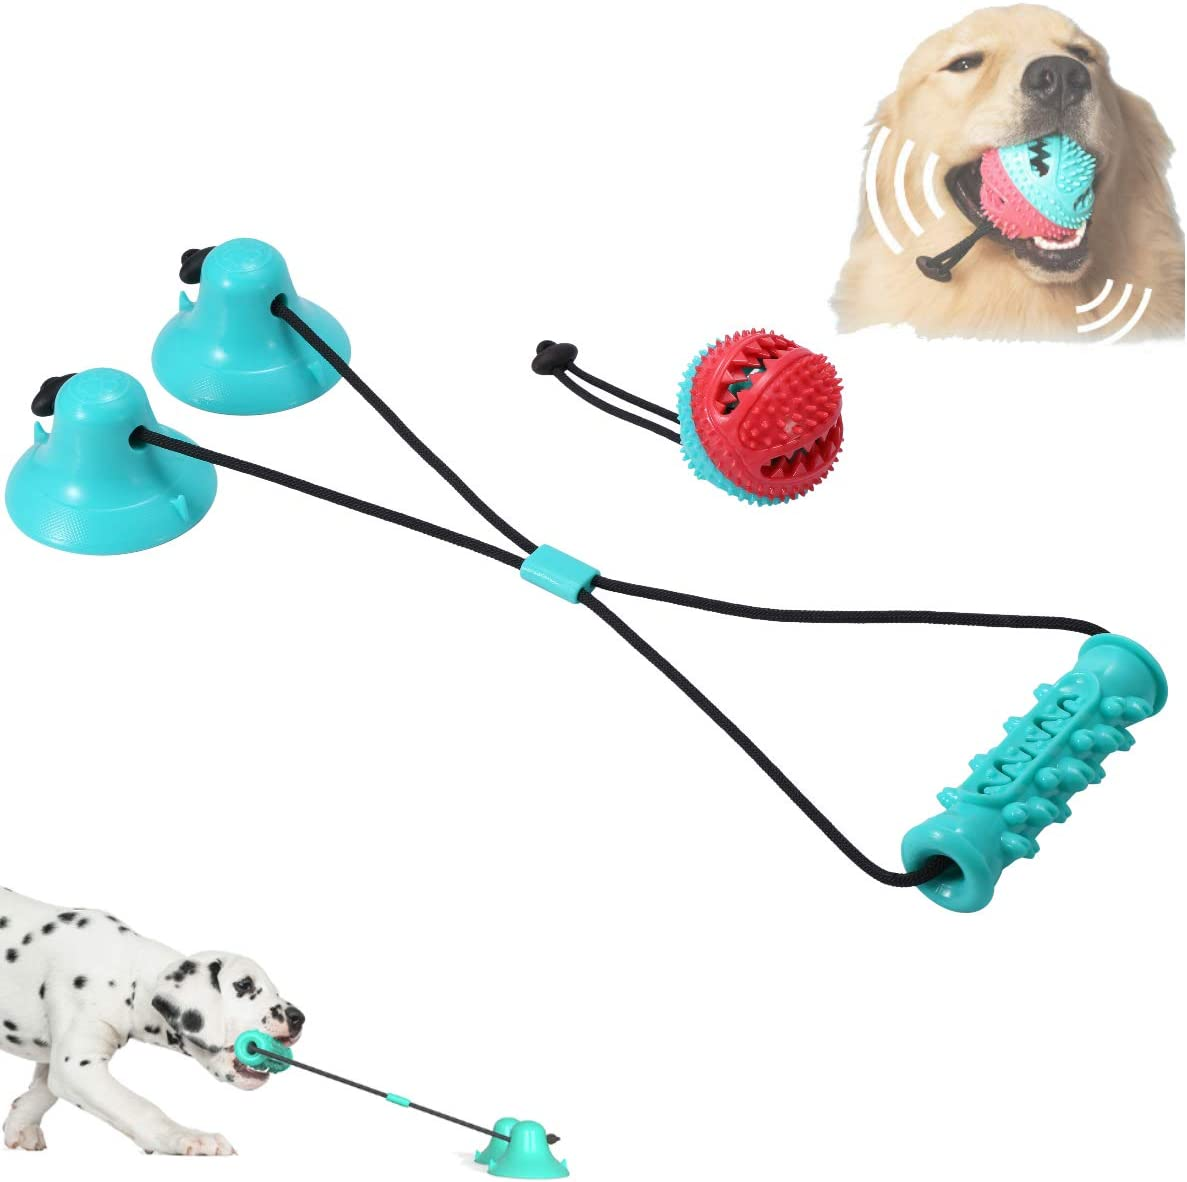 2pcs Dog Chew Toys and Dogs Ball Training Treats Teething Rope Toys with Suction Cup for Boredom Dog Puzzle Treat Food Dispensing Ball Toy Suitable for Small Large Dogs